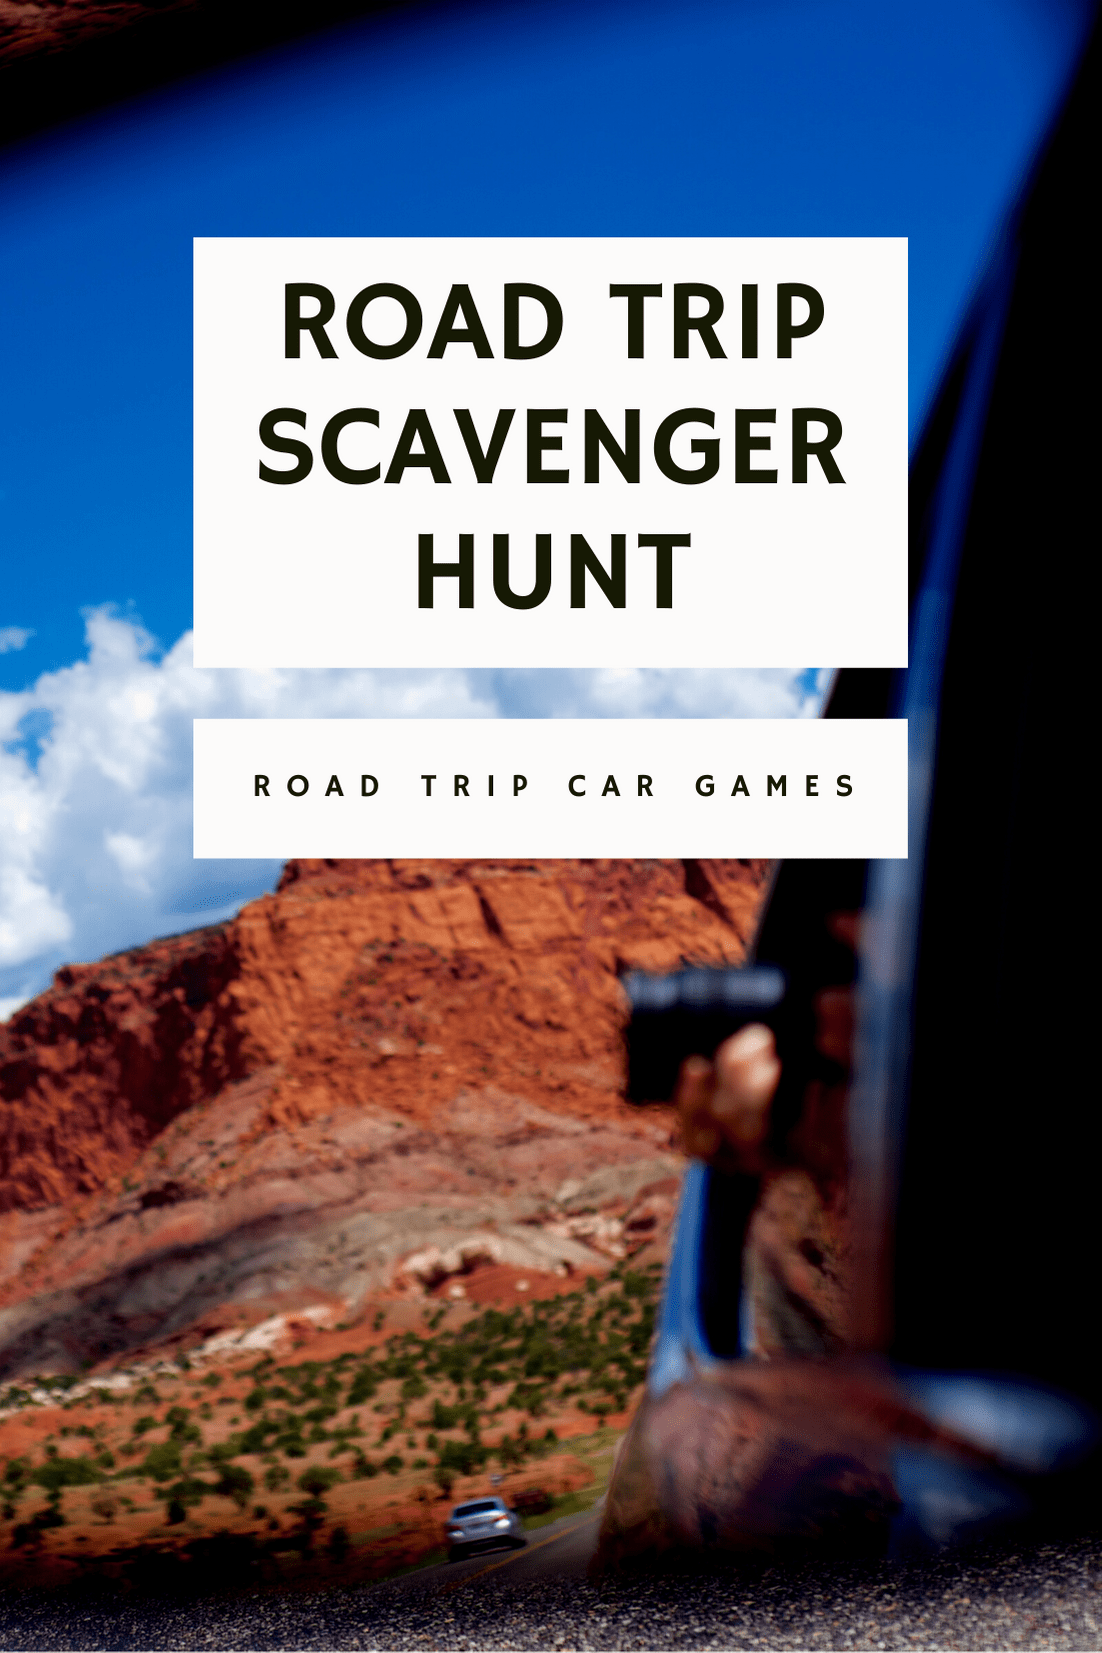 A road trip scavenger hunt is a fun game that keeps everyone in the car engaged! Print off a list of things to see on a road trip and keep your eyes peeled, and then award points for who sees the most and who sees what first. Play this fun road trip game on your next long car trip!  #RoadTripGames #RoadTripGamesForAdults #RoadTripGamesForTeens #RoadTripGamesForKids #FamilyRoadTripGames #RoadTripGamesF0rCouples #PrintableRoadTripGames #CarRides #RoadTripGamesWithFriends #DIYRoadTripGames